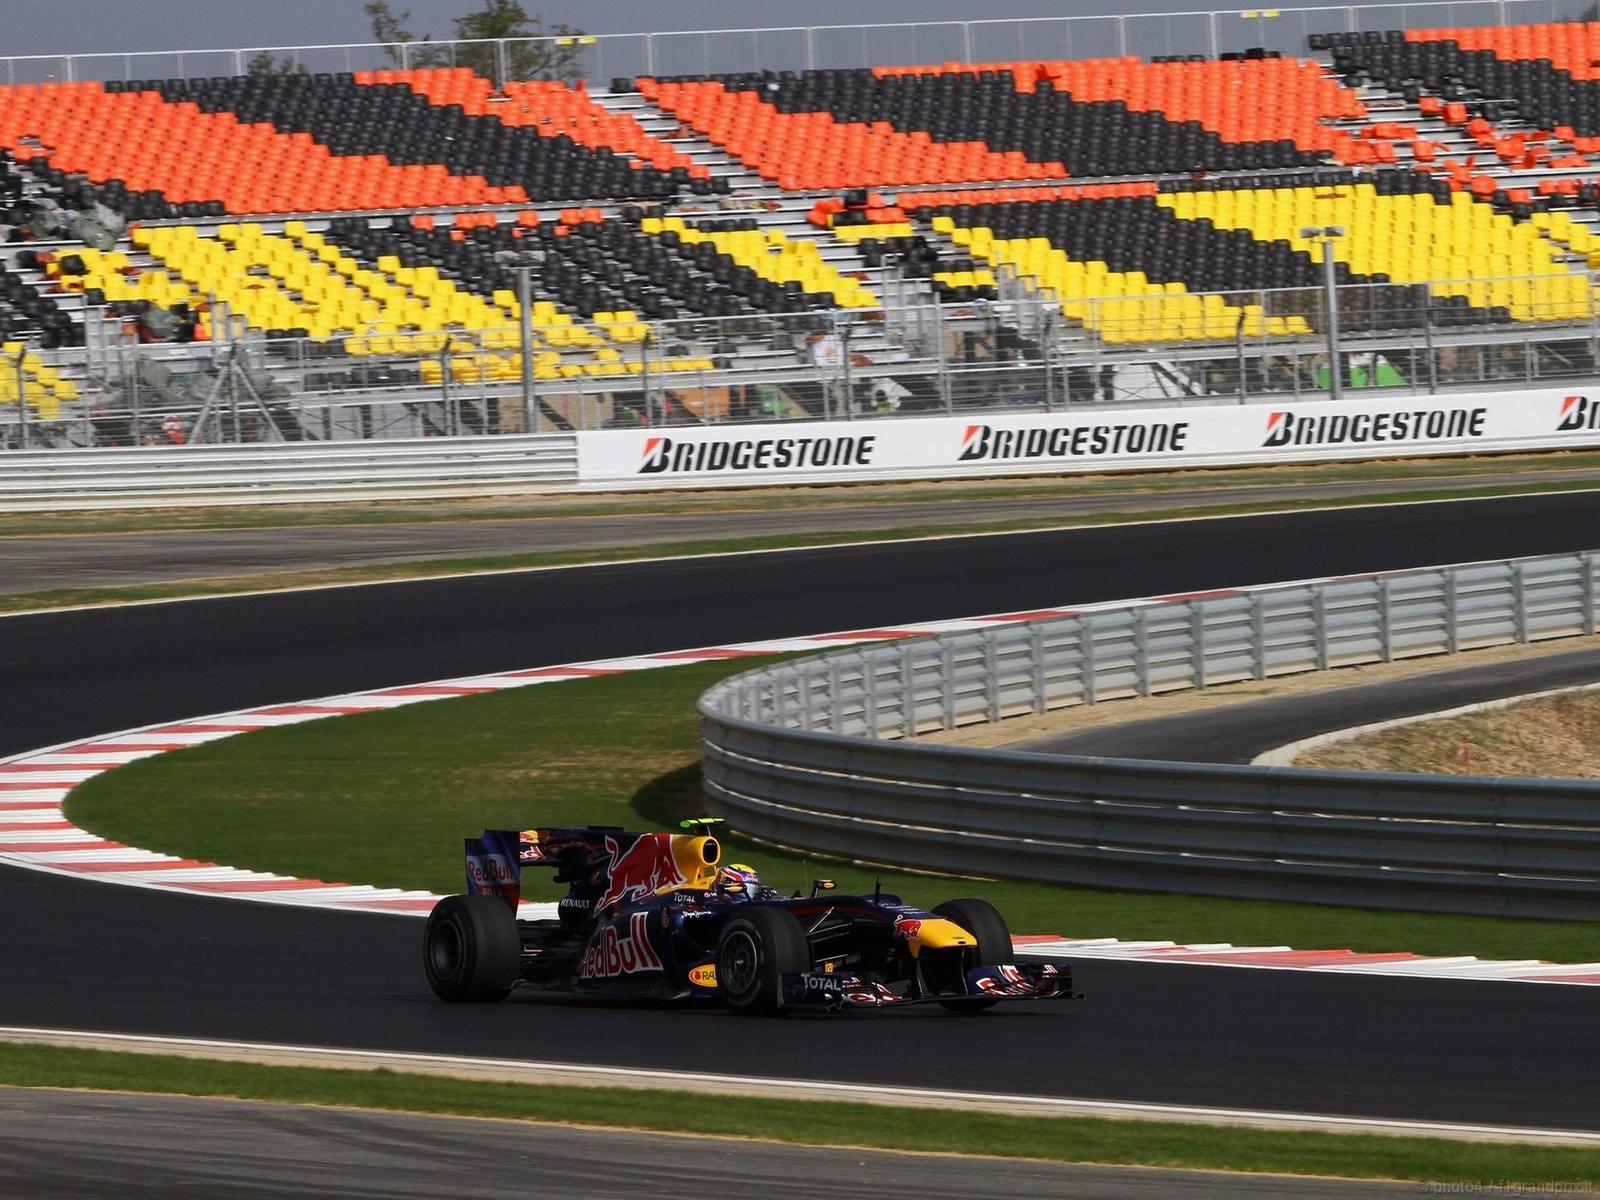 pojazdy - formula1 - gp_corea_wallpapers_000049